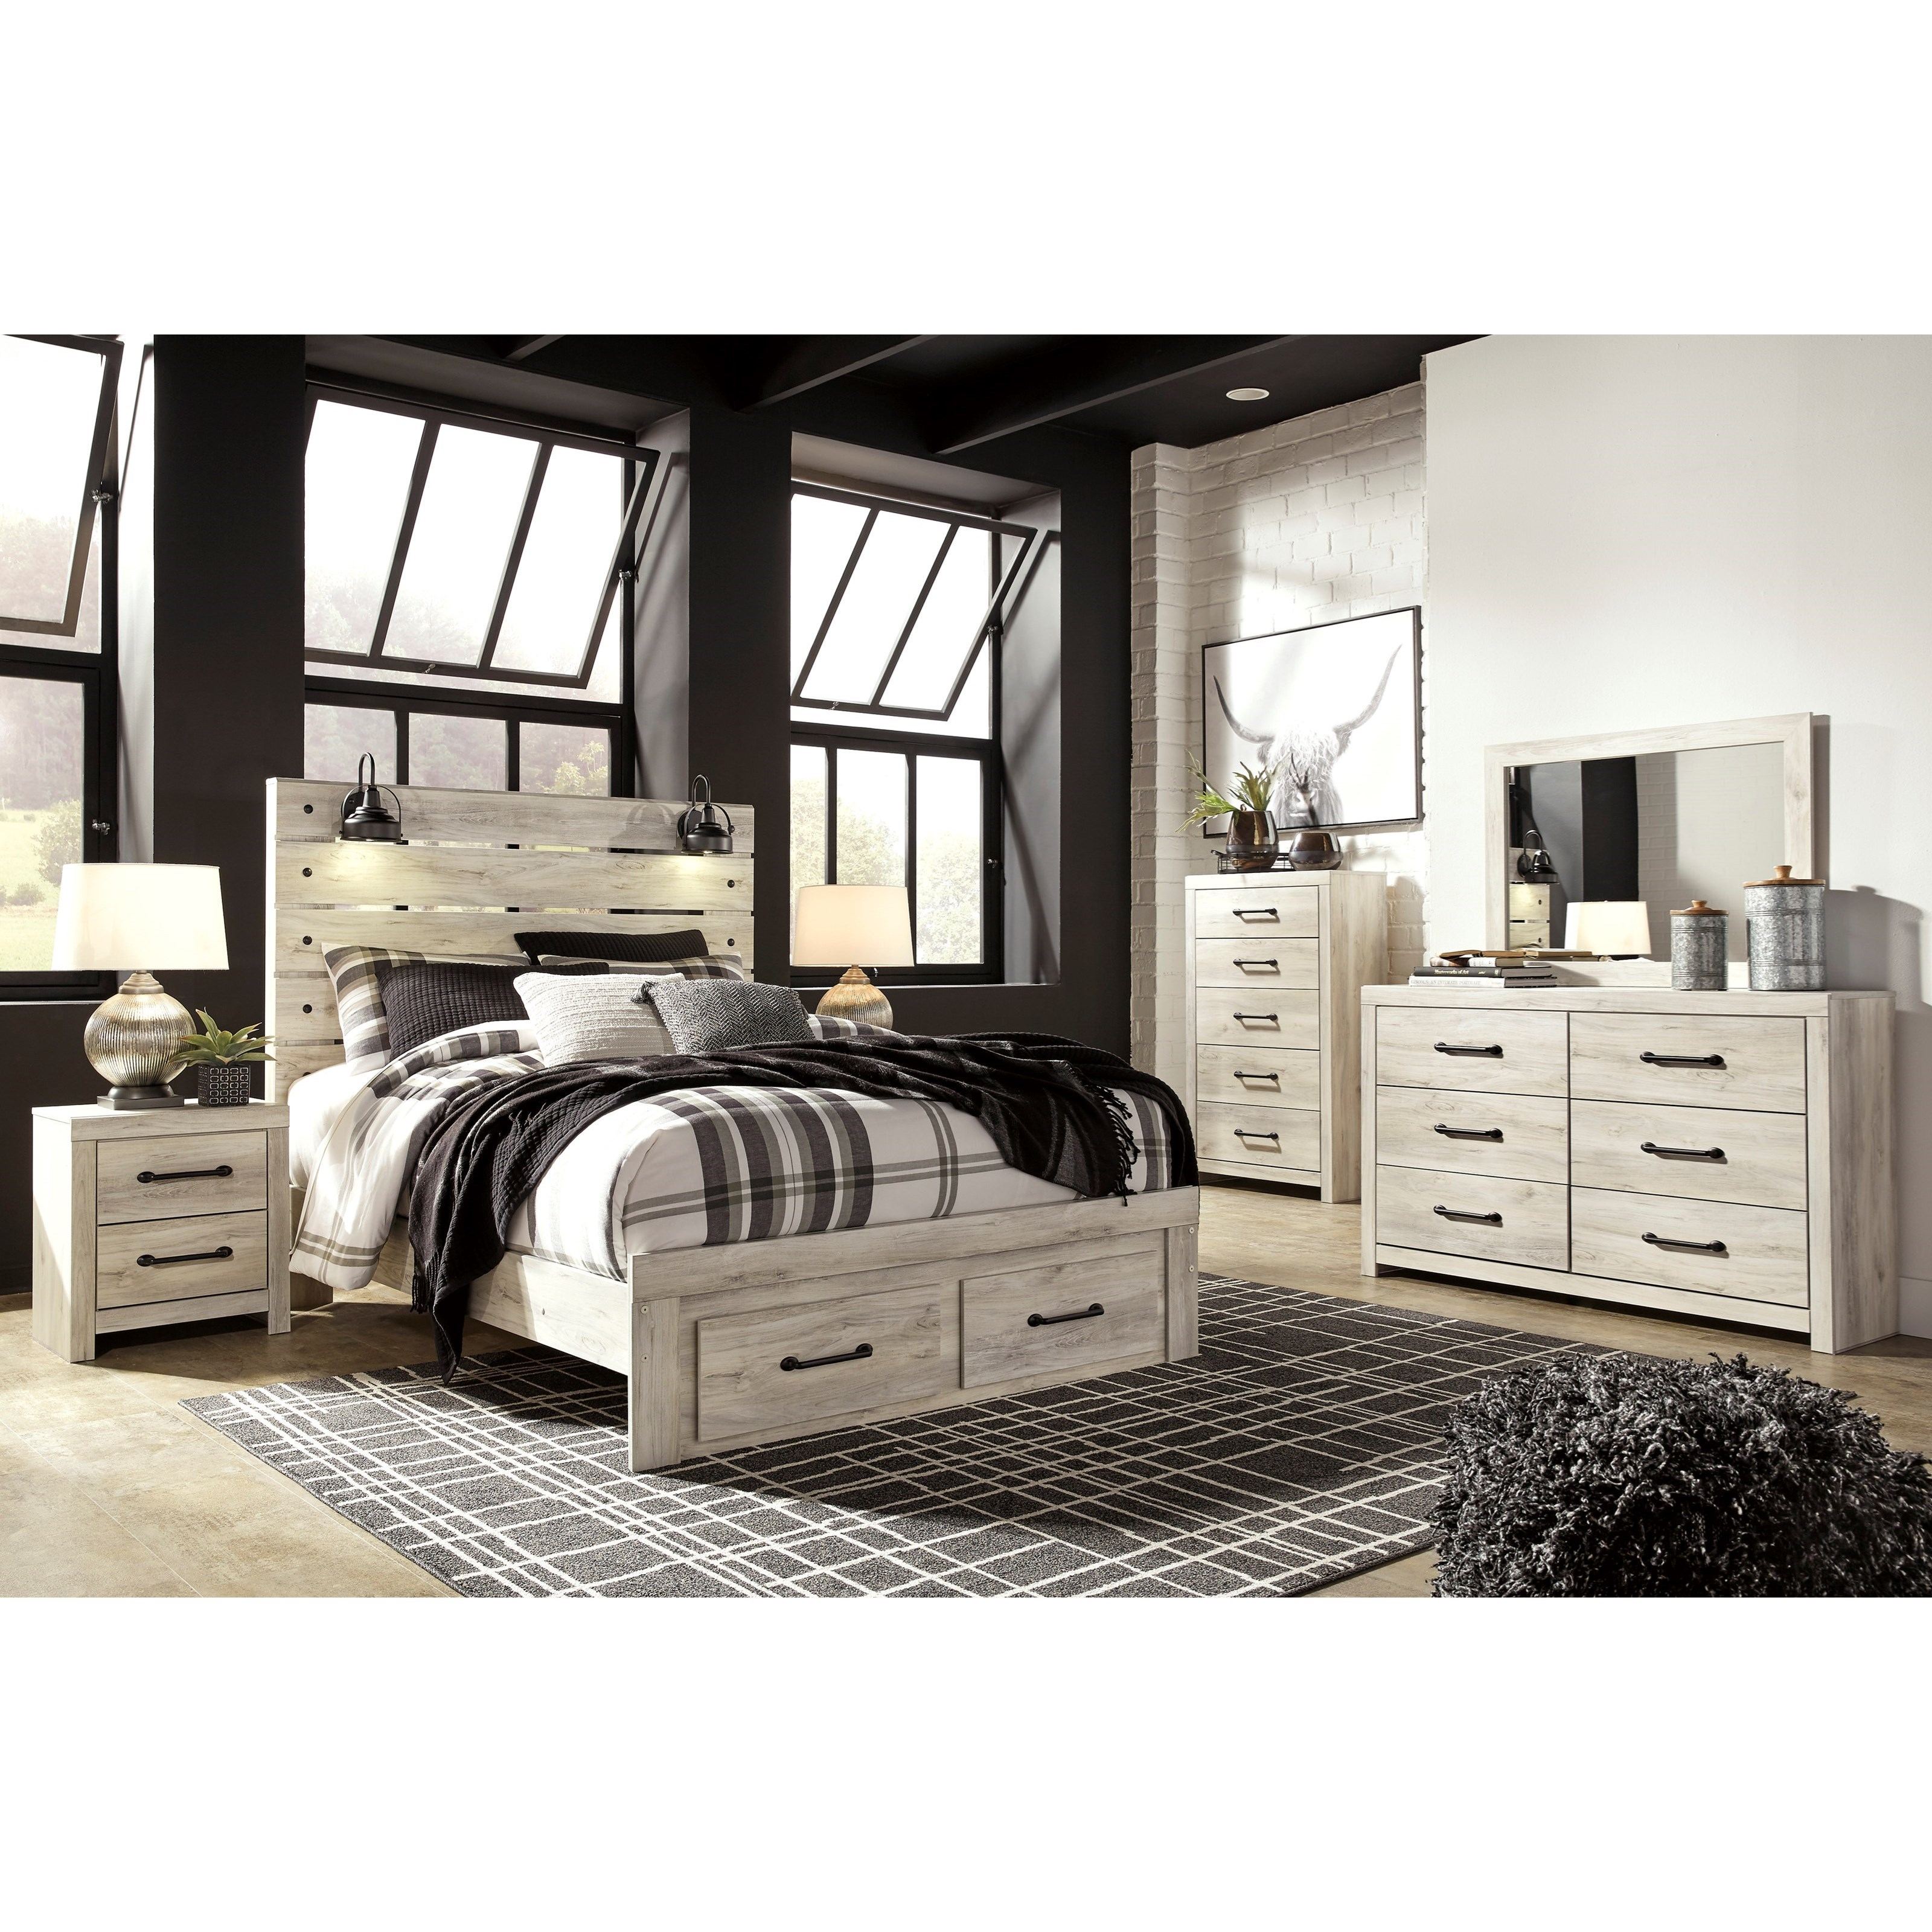 Cambeck Queen Bedroom Group by Signature Design by Ashley at Zak's Warehouse Clearance Center